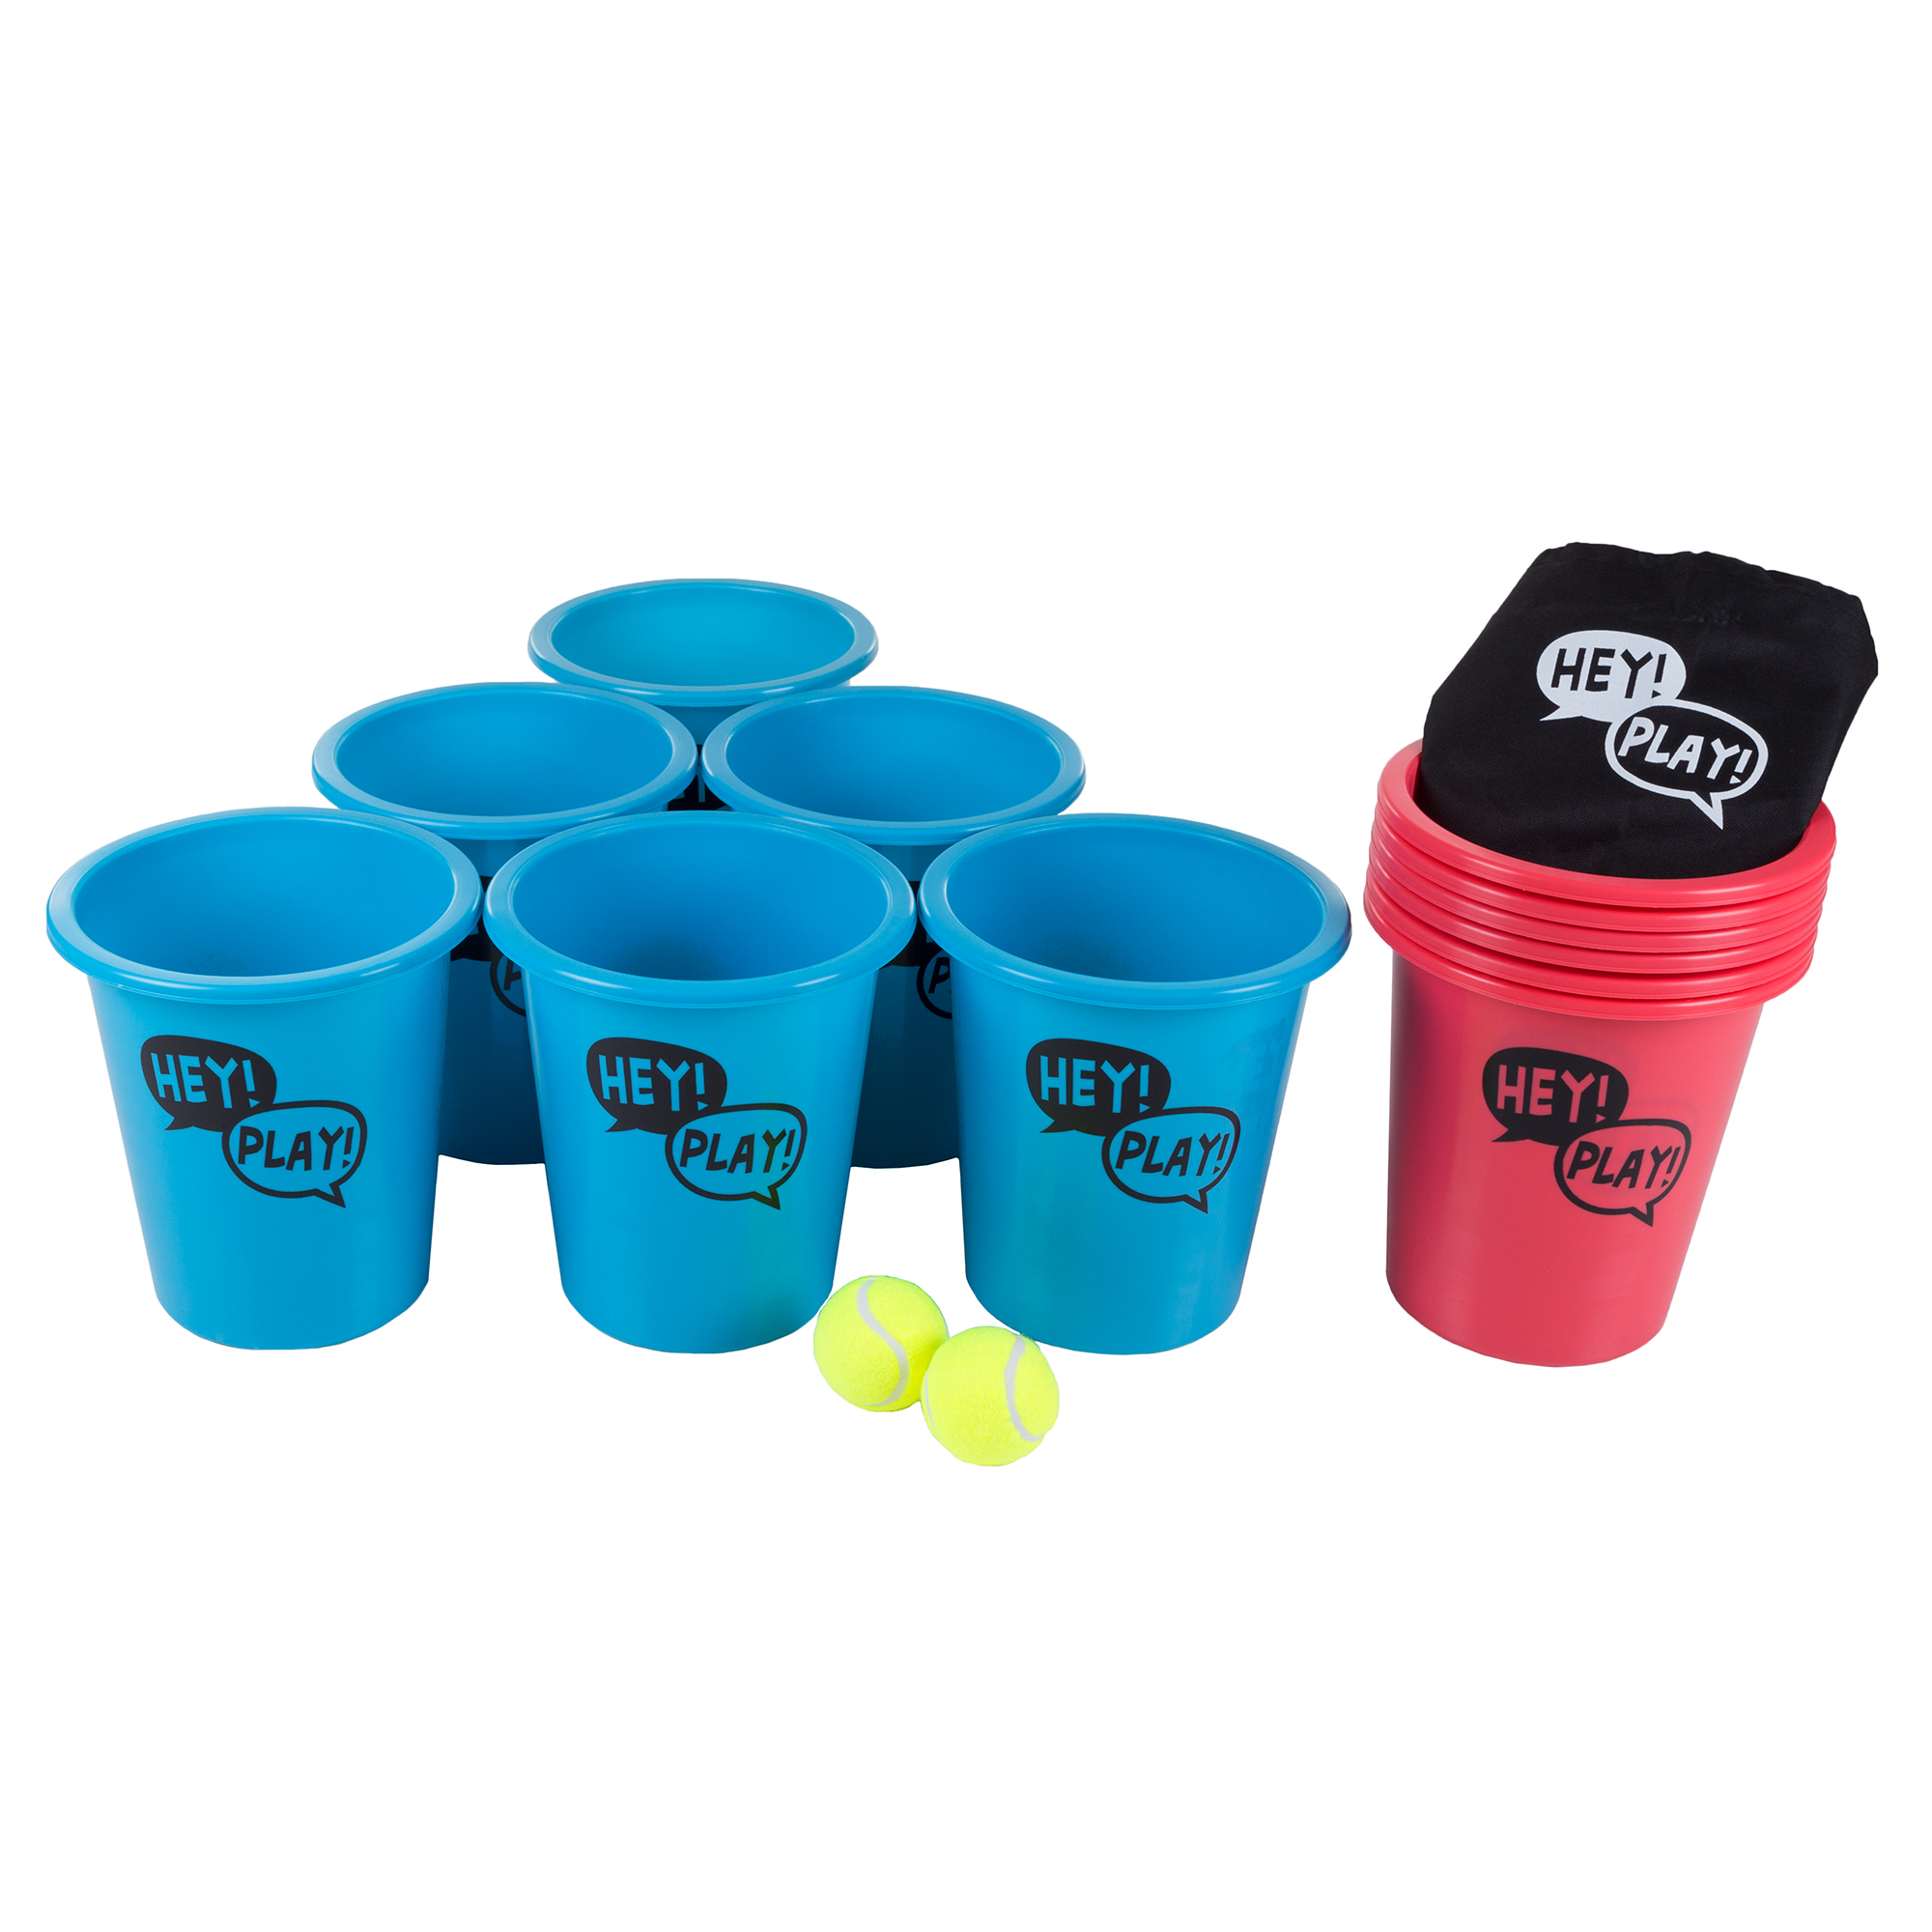 Bucket Ball Giant Beer Pong Outdoor Game Set for Kids and Adults with 12 Buckets, 2 Balls, Tote Bag by Hey! Play!